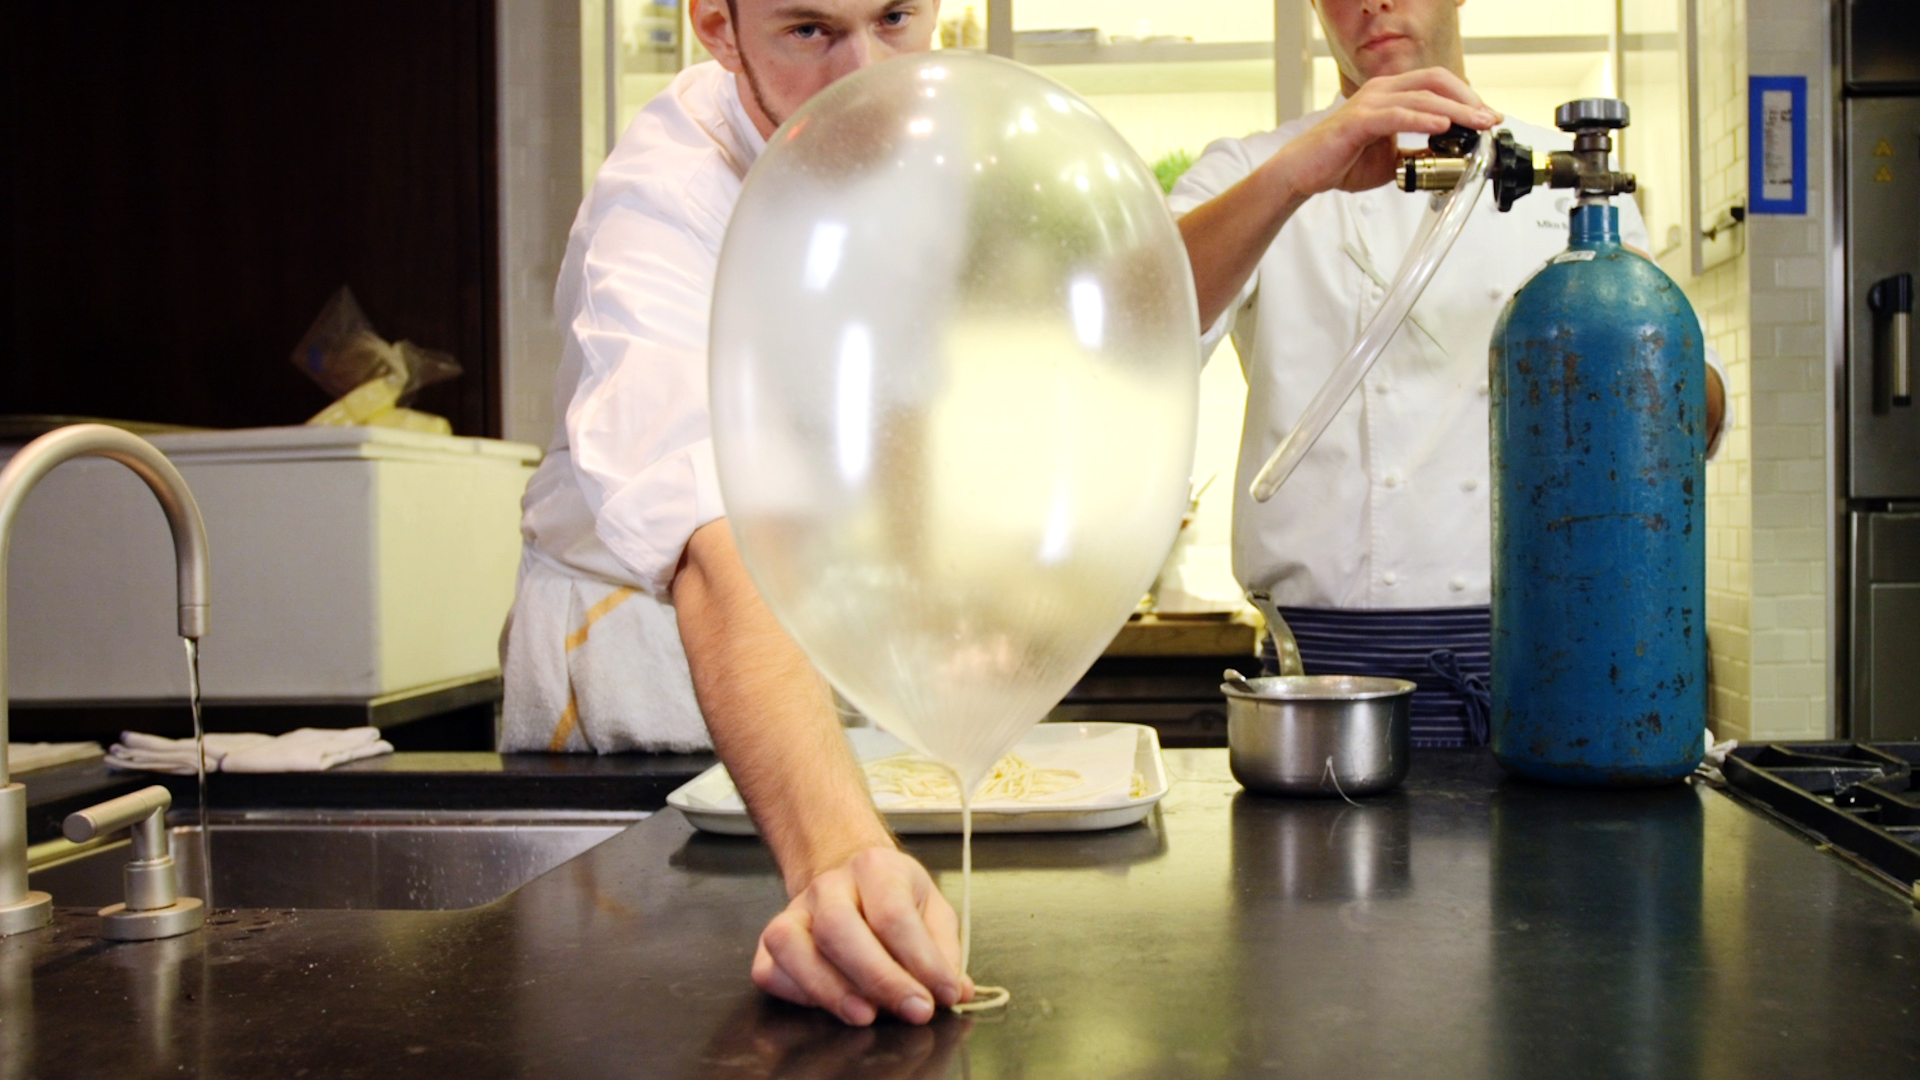 Blue apron techcrunch